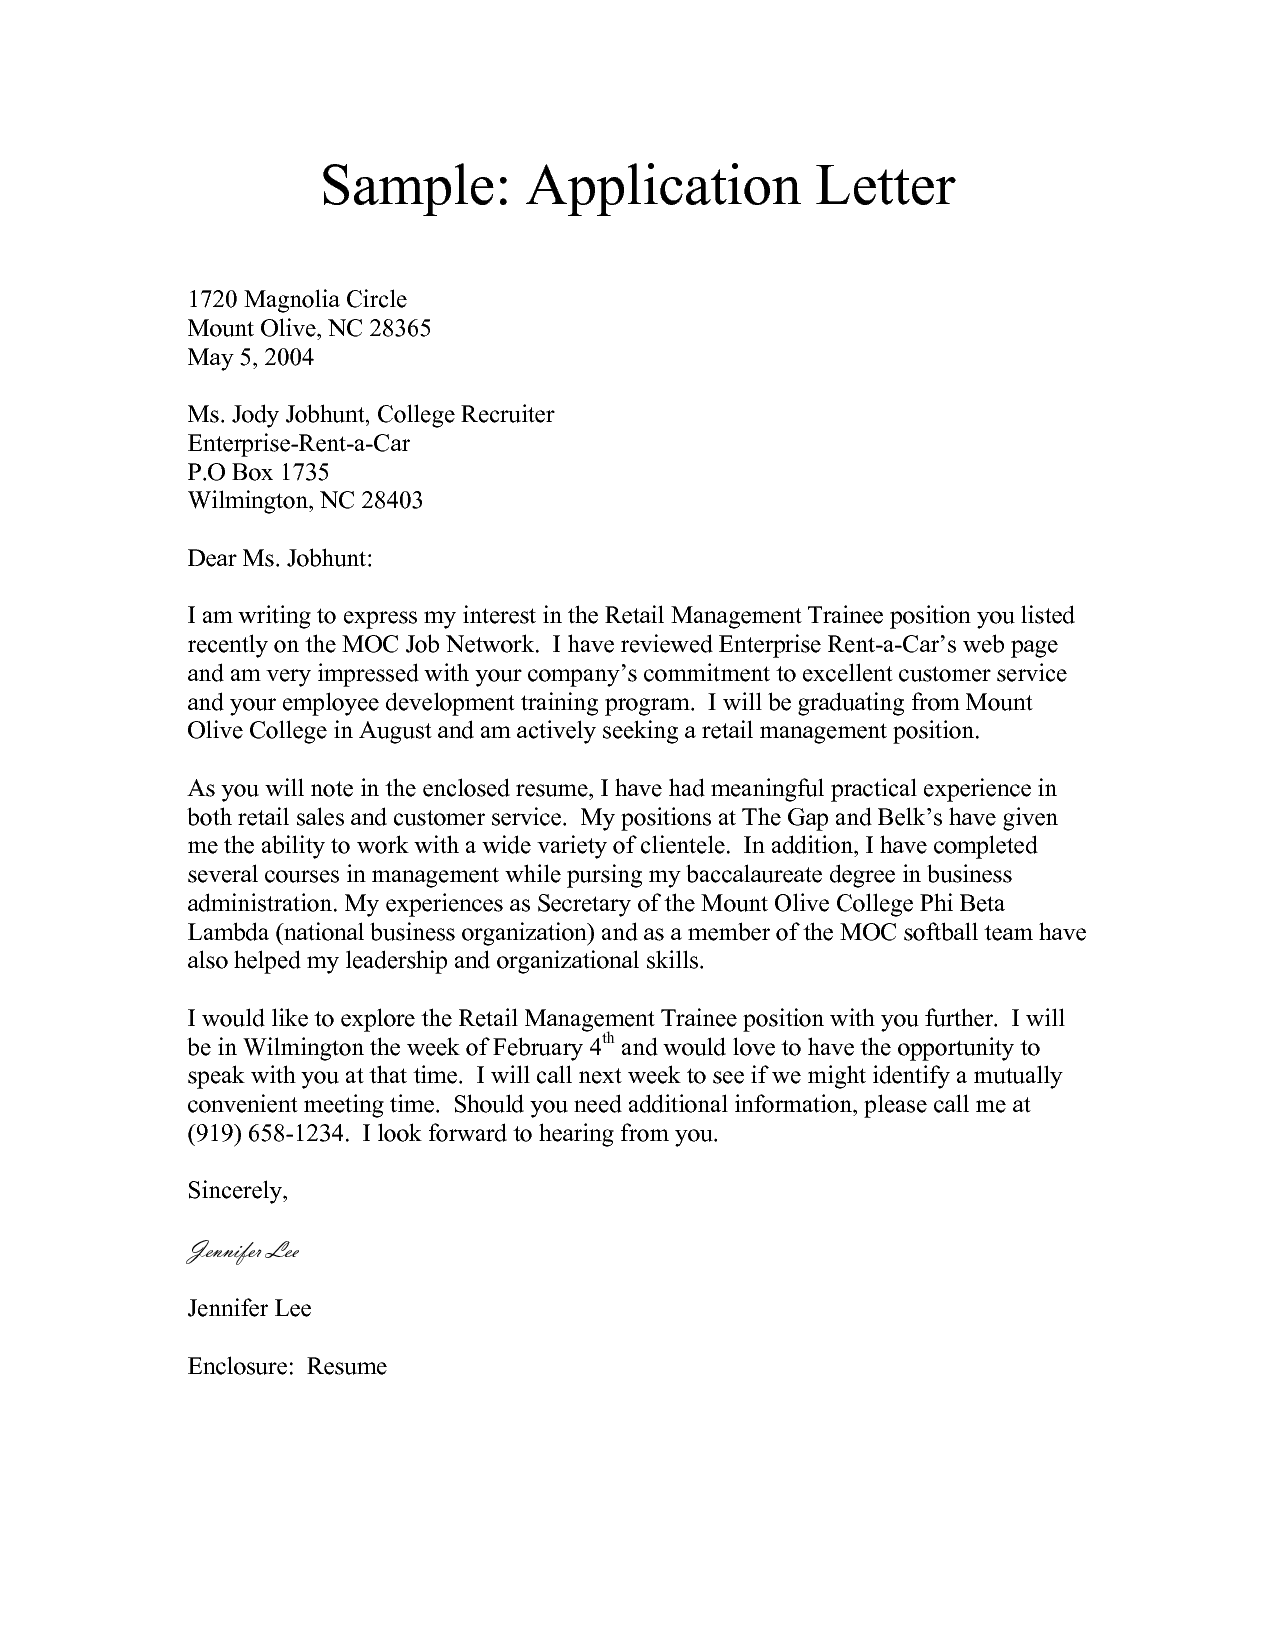 Writing a college application letter how to write college admission essay quality